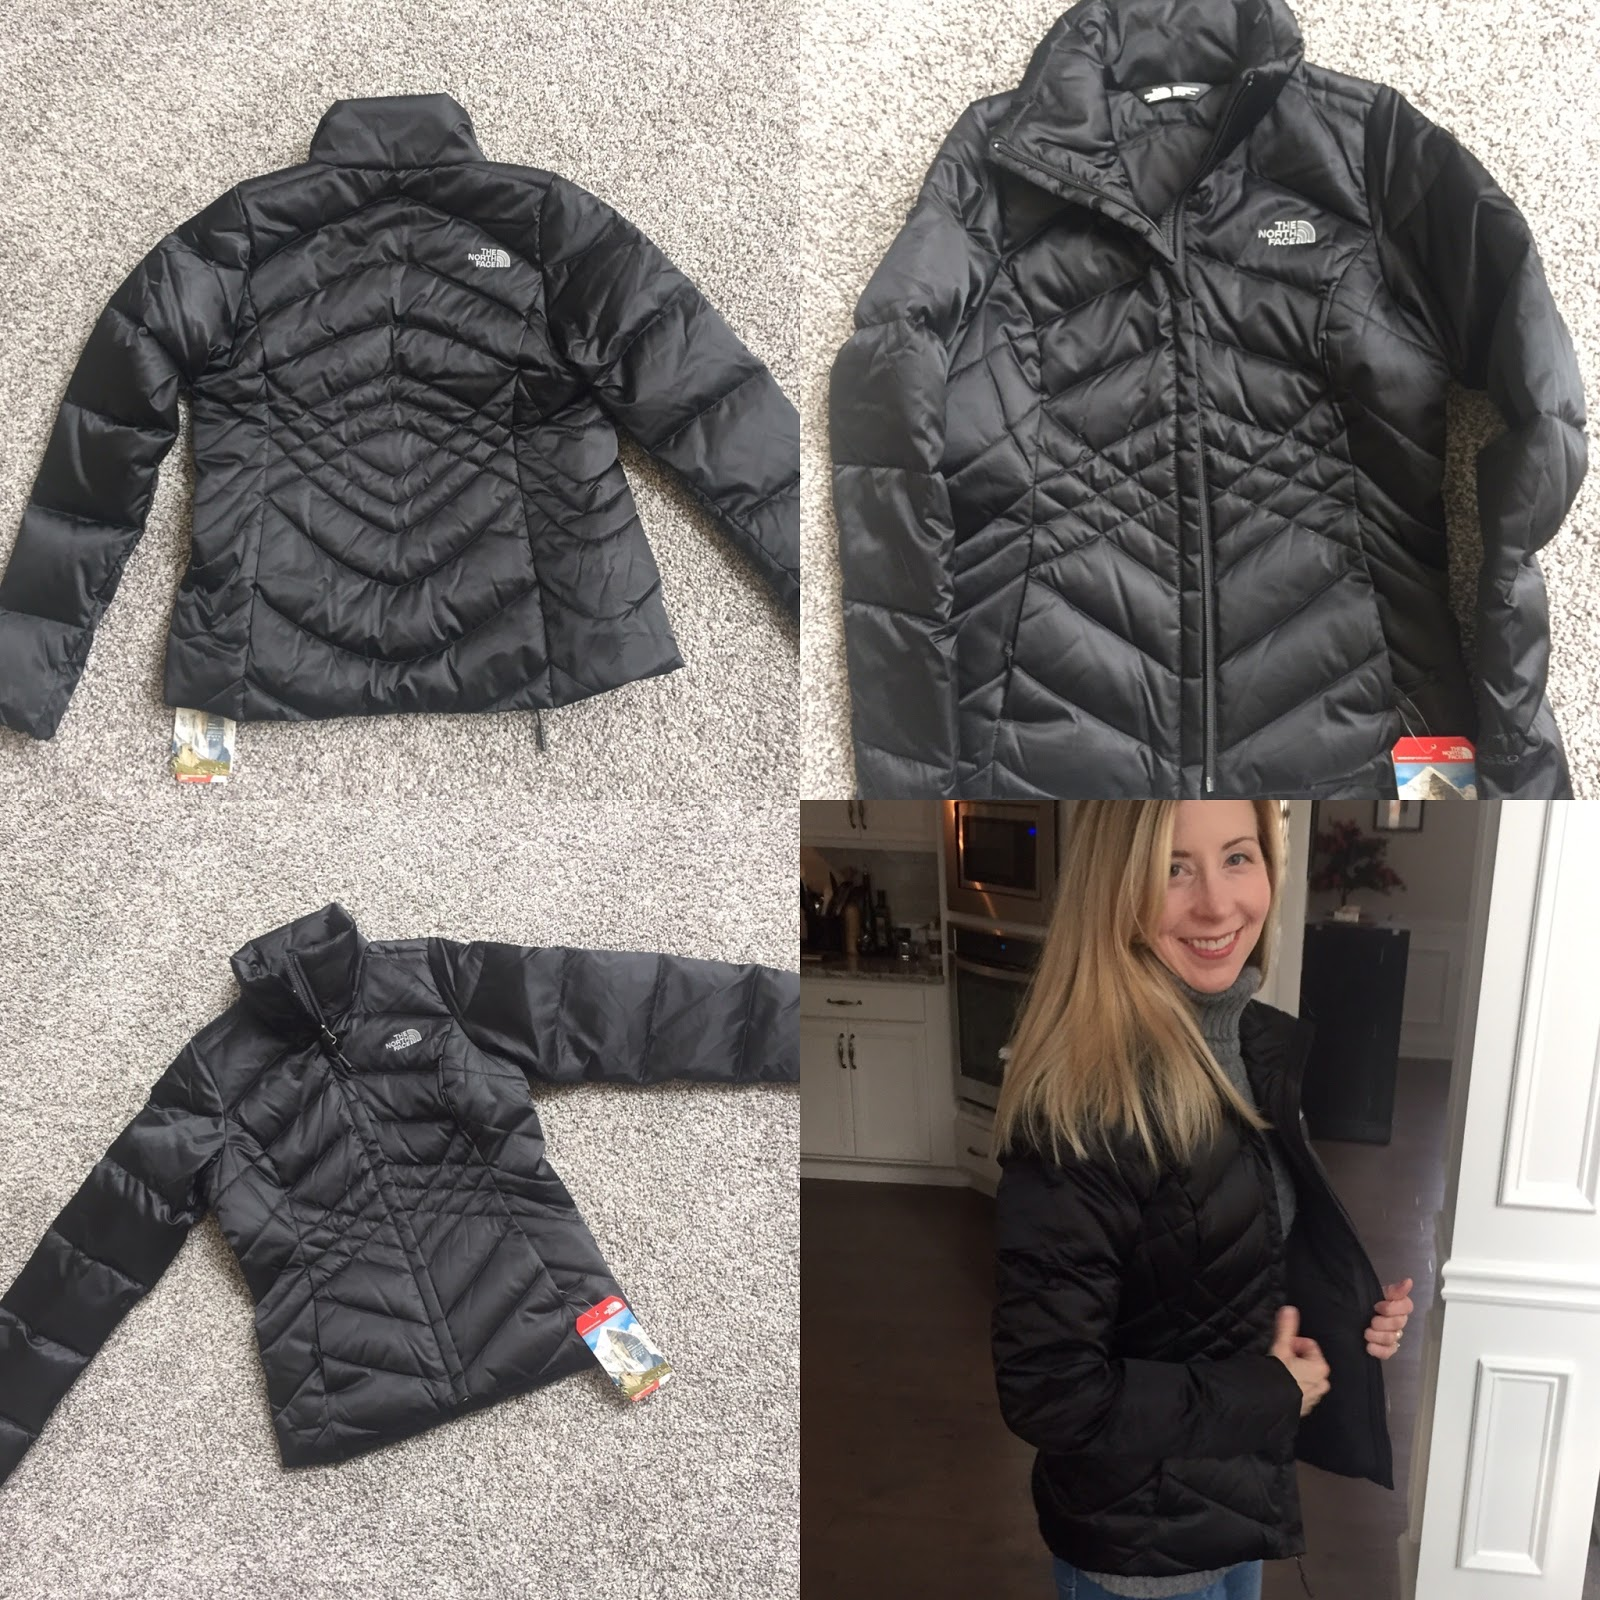 85fc53bed I am absolutely thrilled with my most recent addition to my collection of  jackets. I got The North Face Women's Aconcagua Jacket in black in size XS  from ...